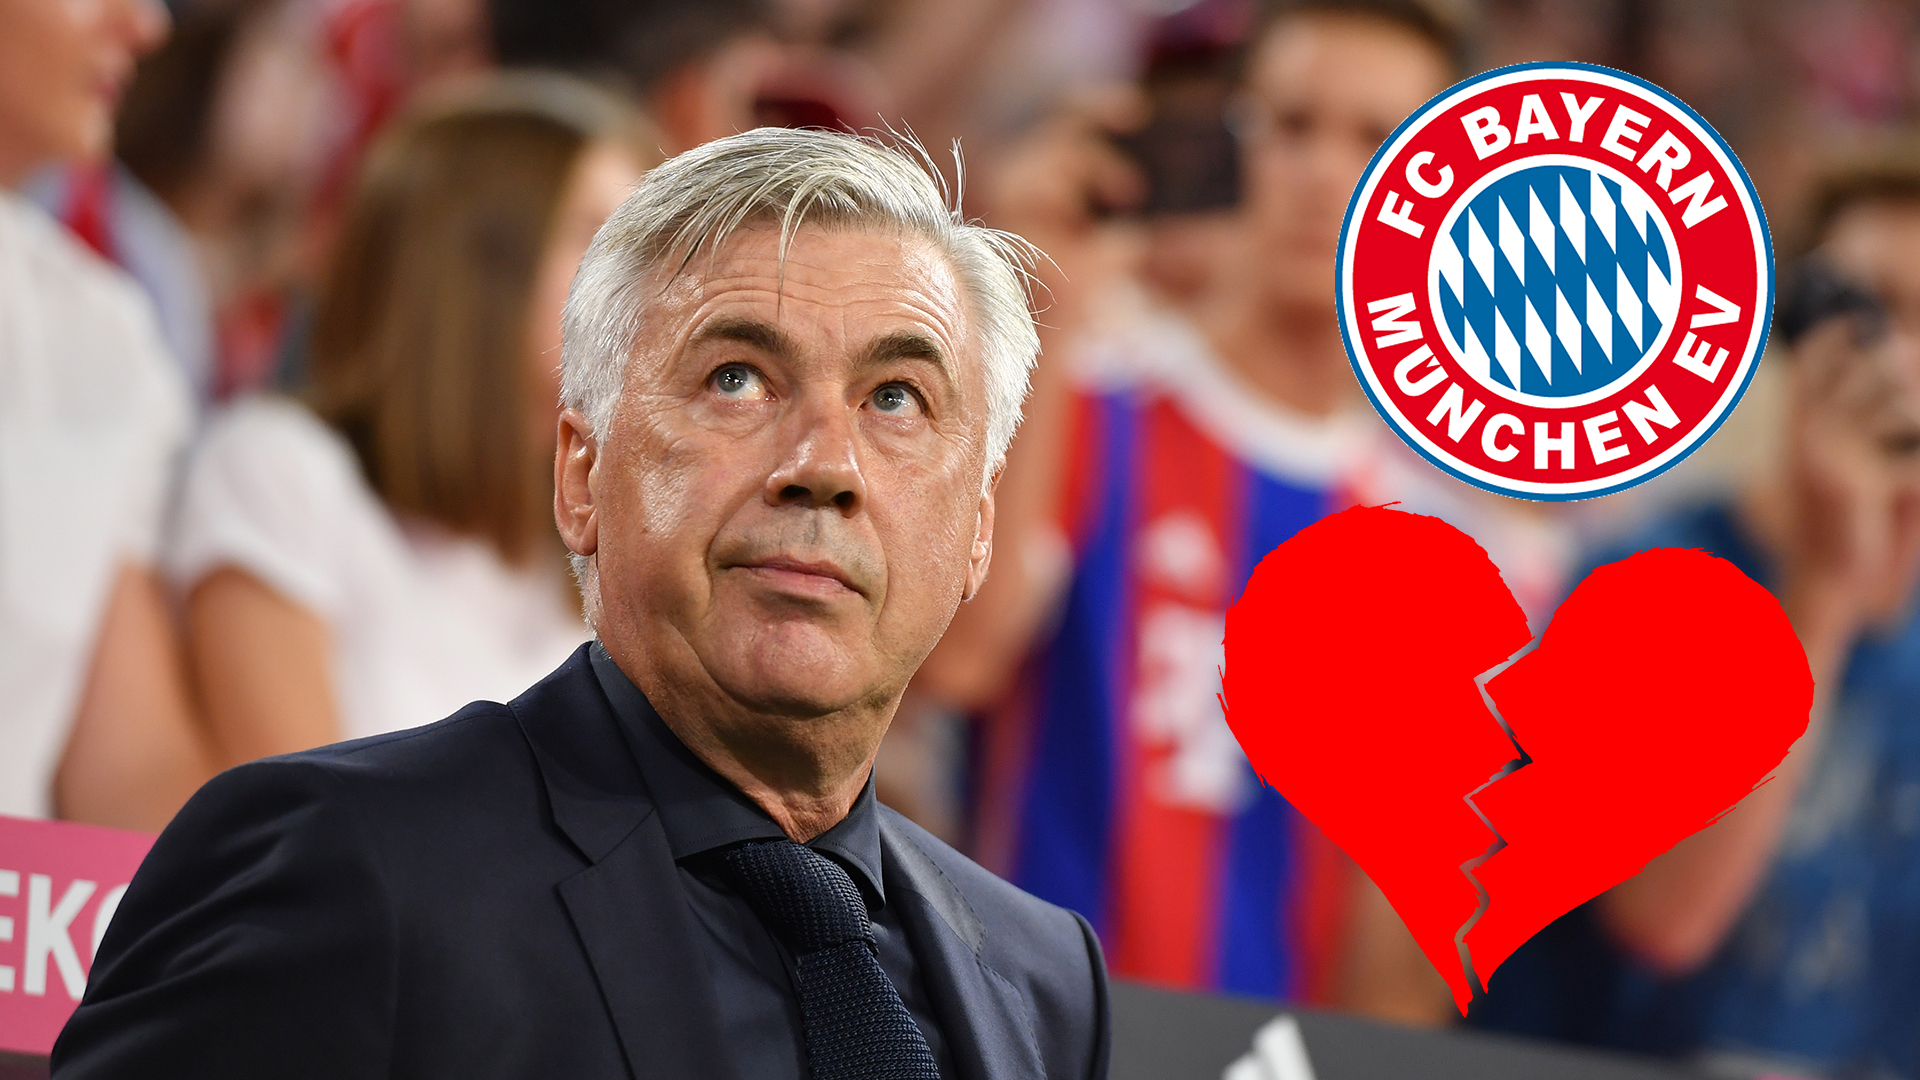 Bayern Munich sack Carlo Ancelotti after defeat against PSG